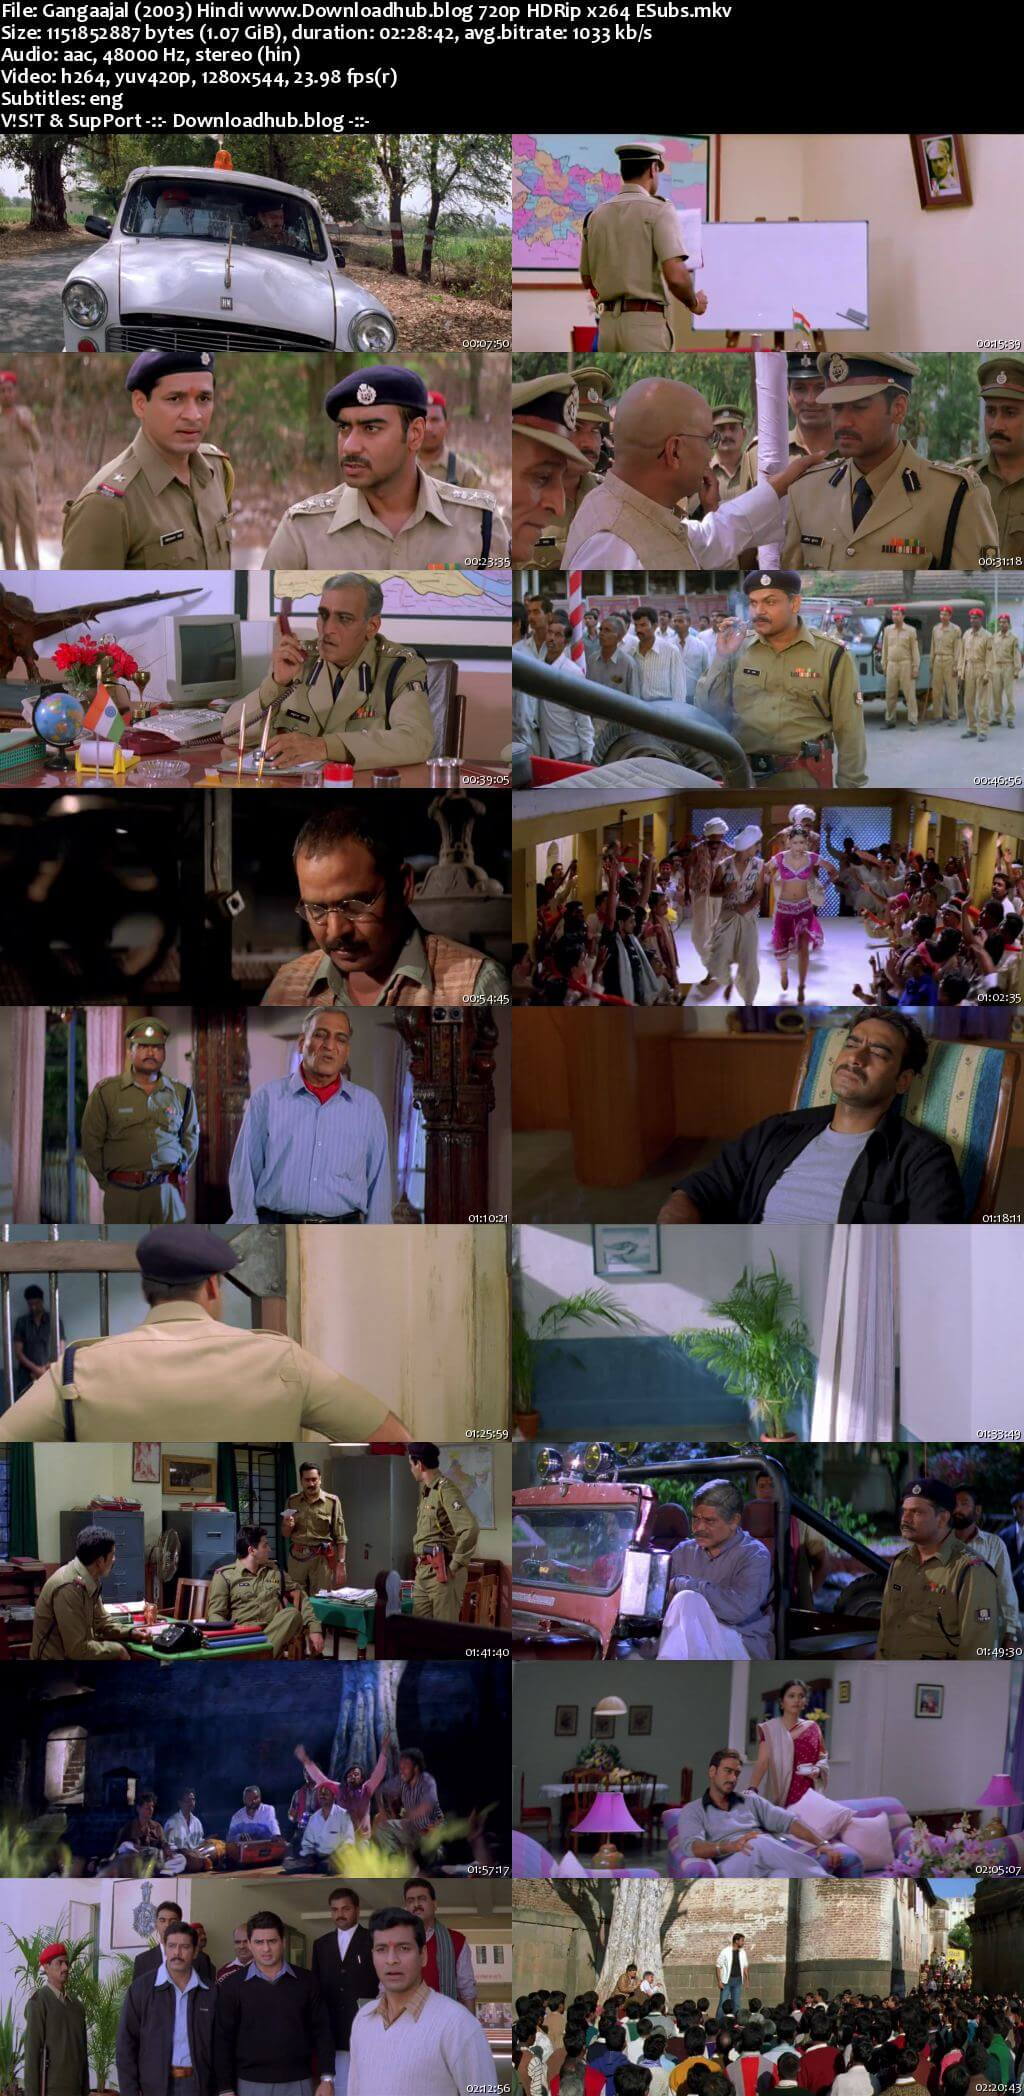 Gangaajal 2003 Hindi 720p HDRip ESubs